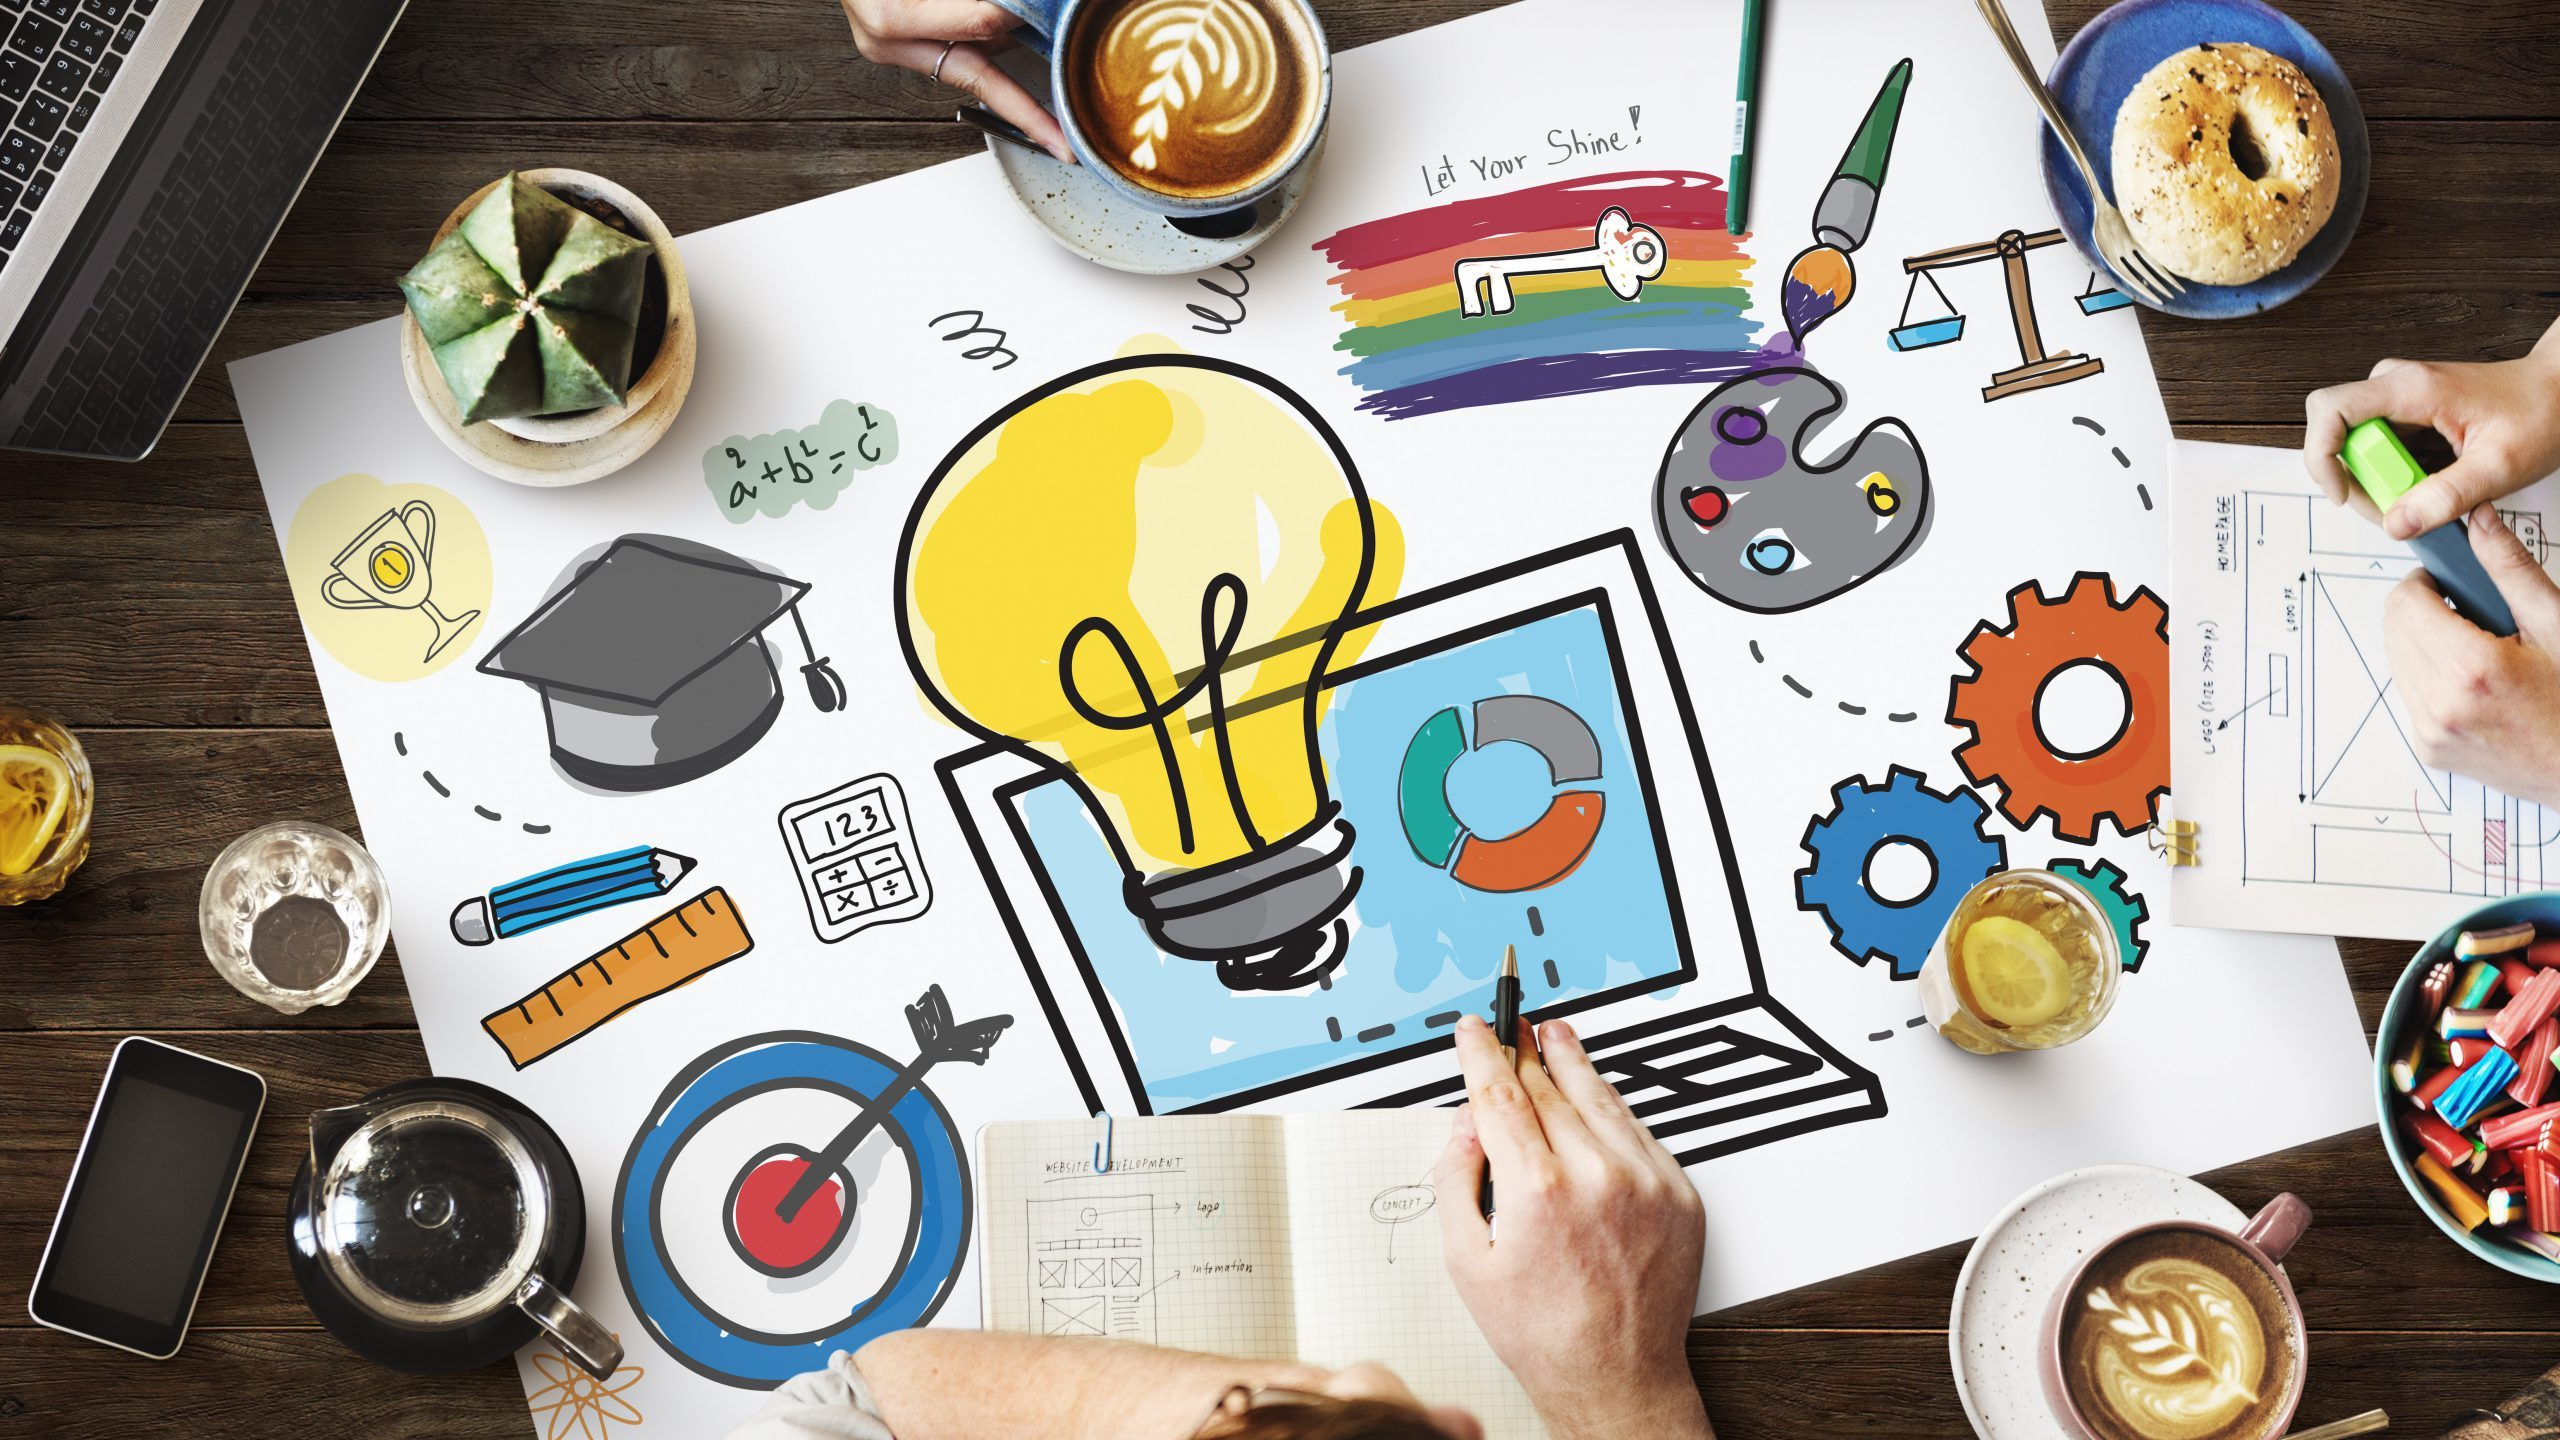 Why Should B2B Companies Invest in Creative Resources?